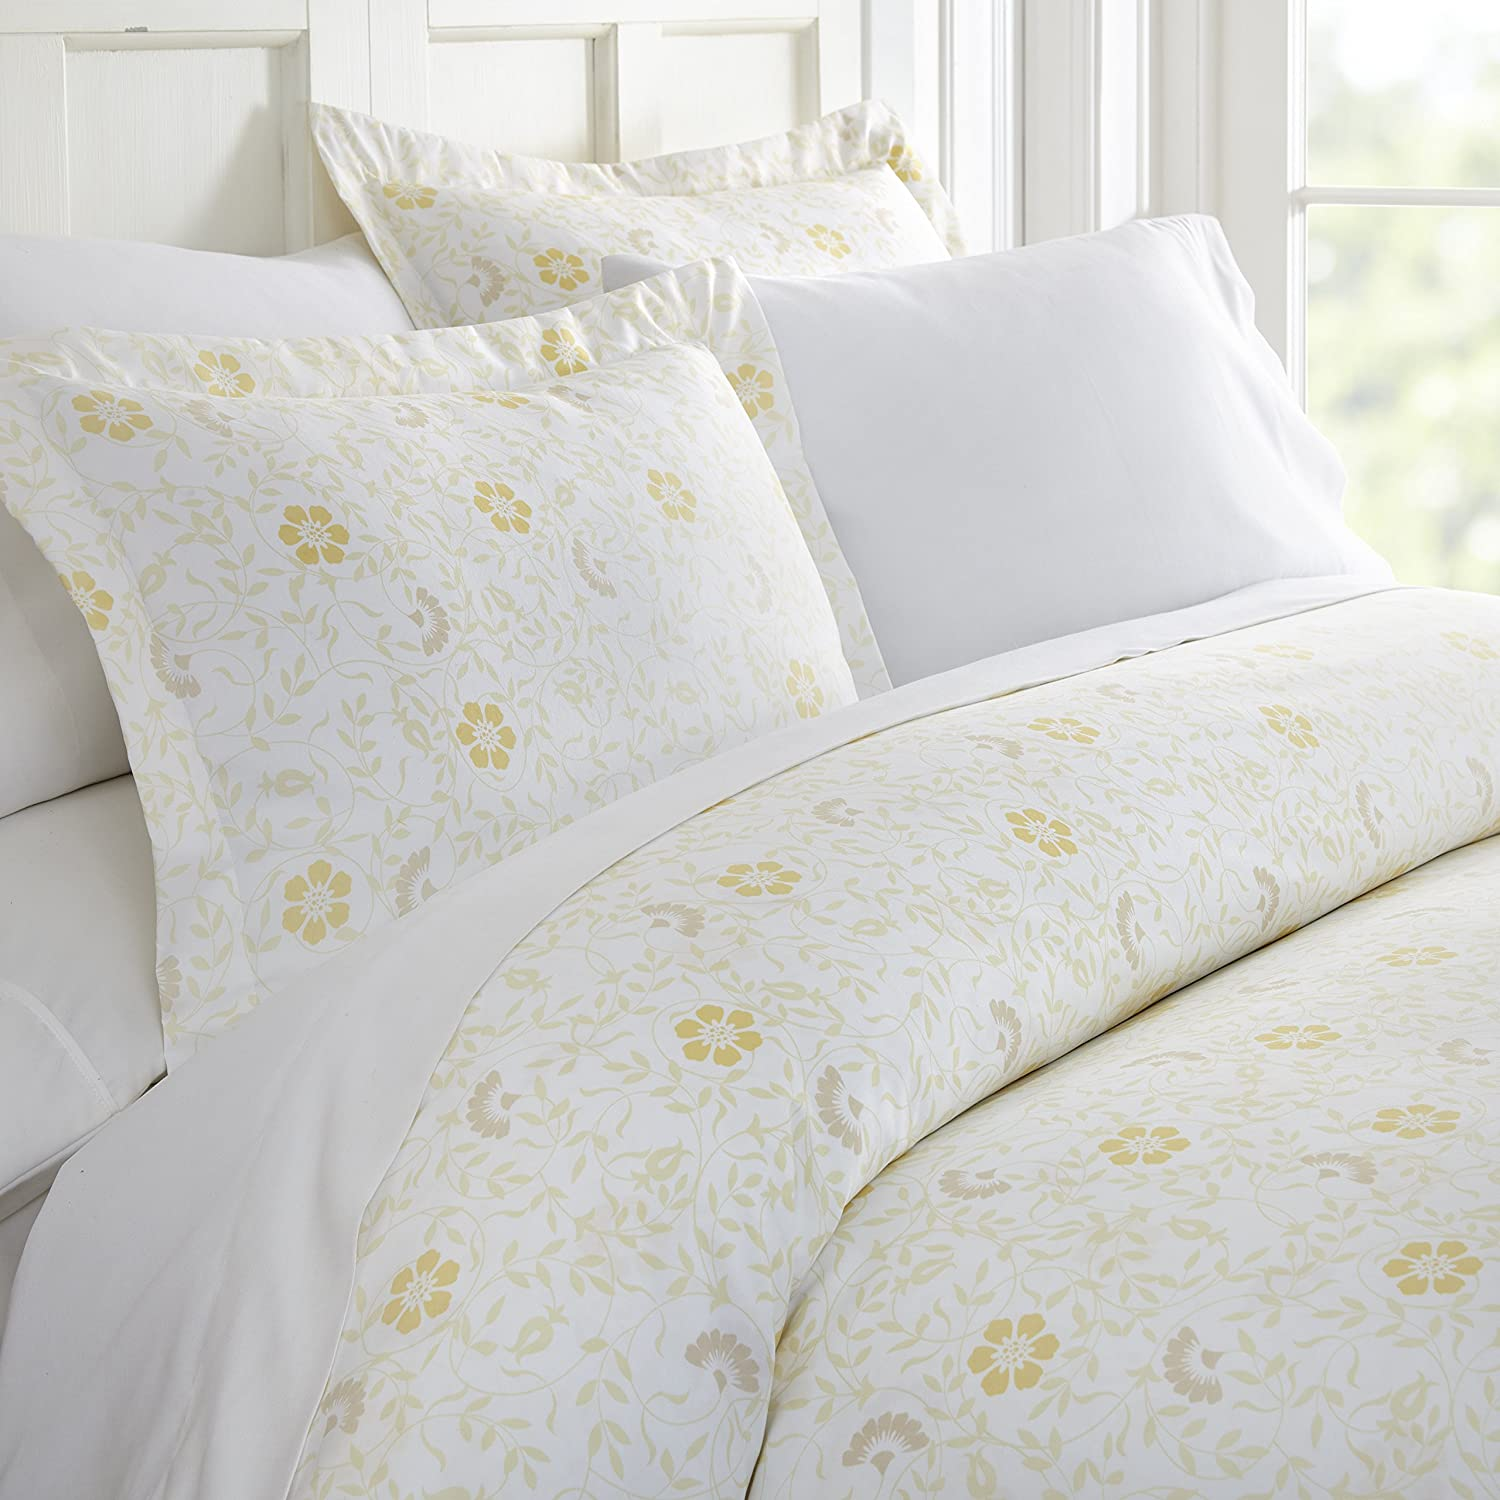 ienjoy Home 3 Piece Spring Vines Patterned Home Collection Premium Ultra Soft Duvet Cover Set, King, White